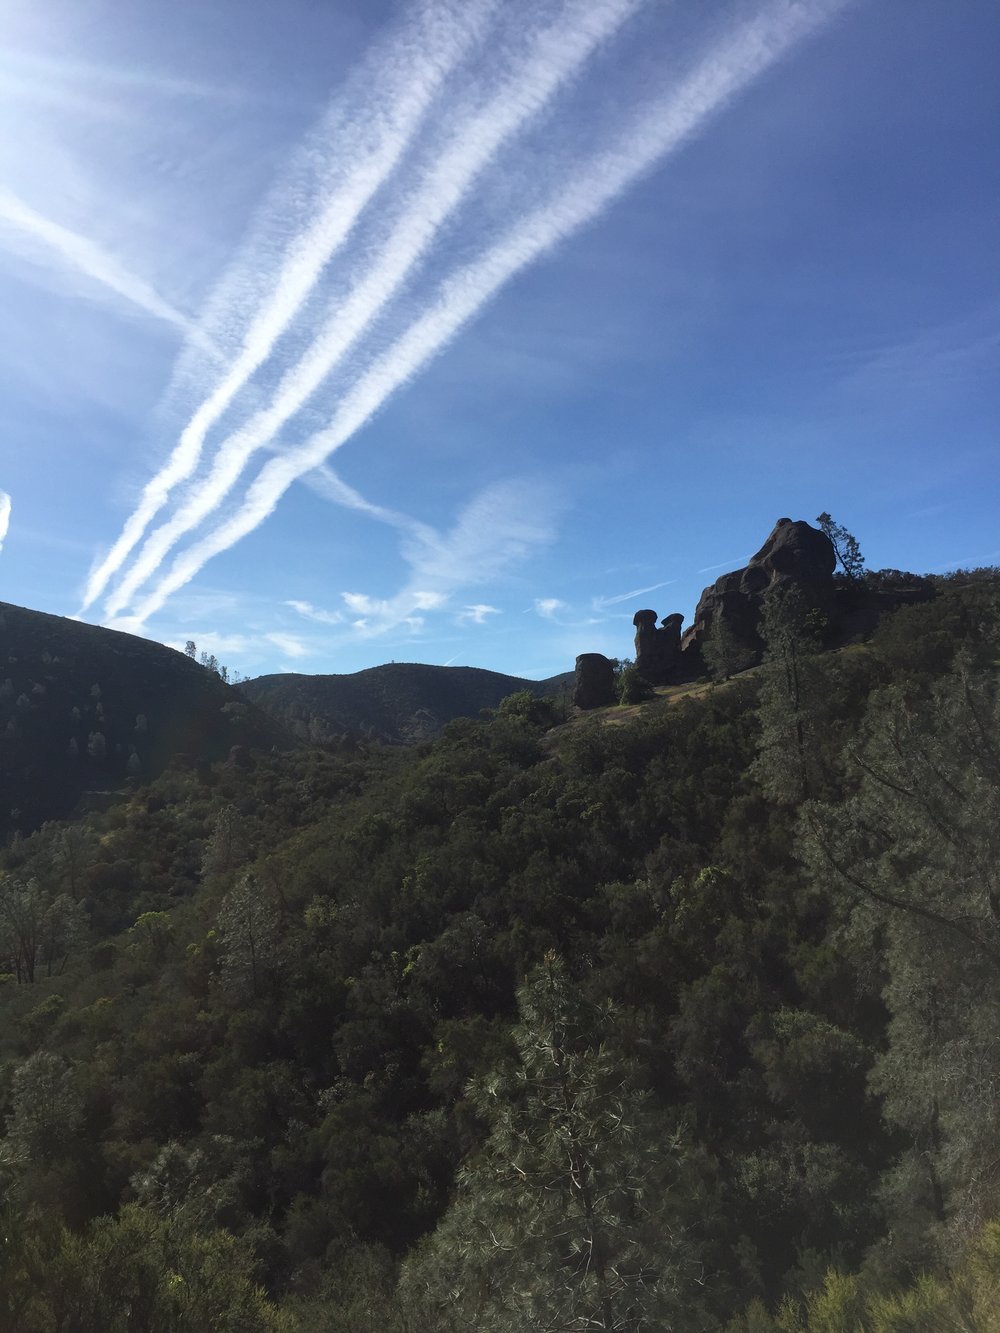 There is no shortage of magnificent scenery at Pinnacles